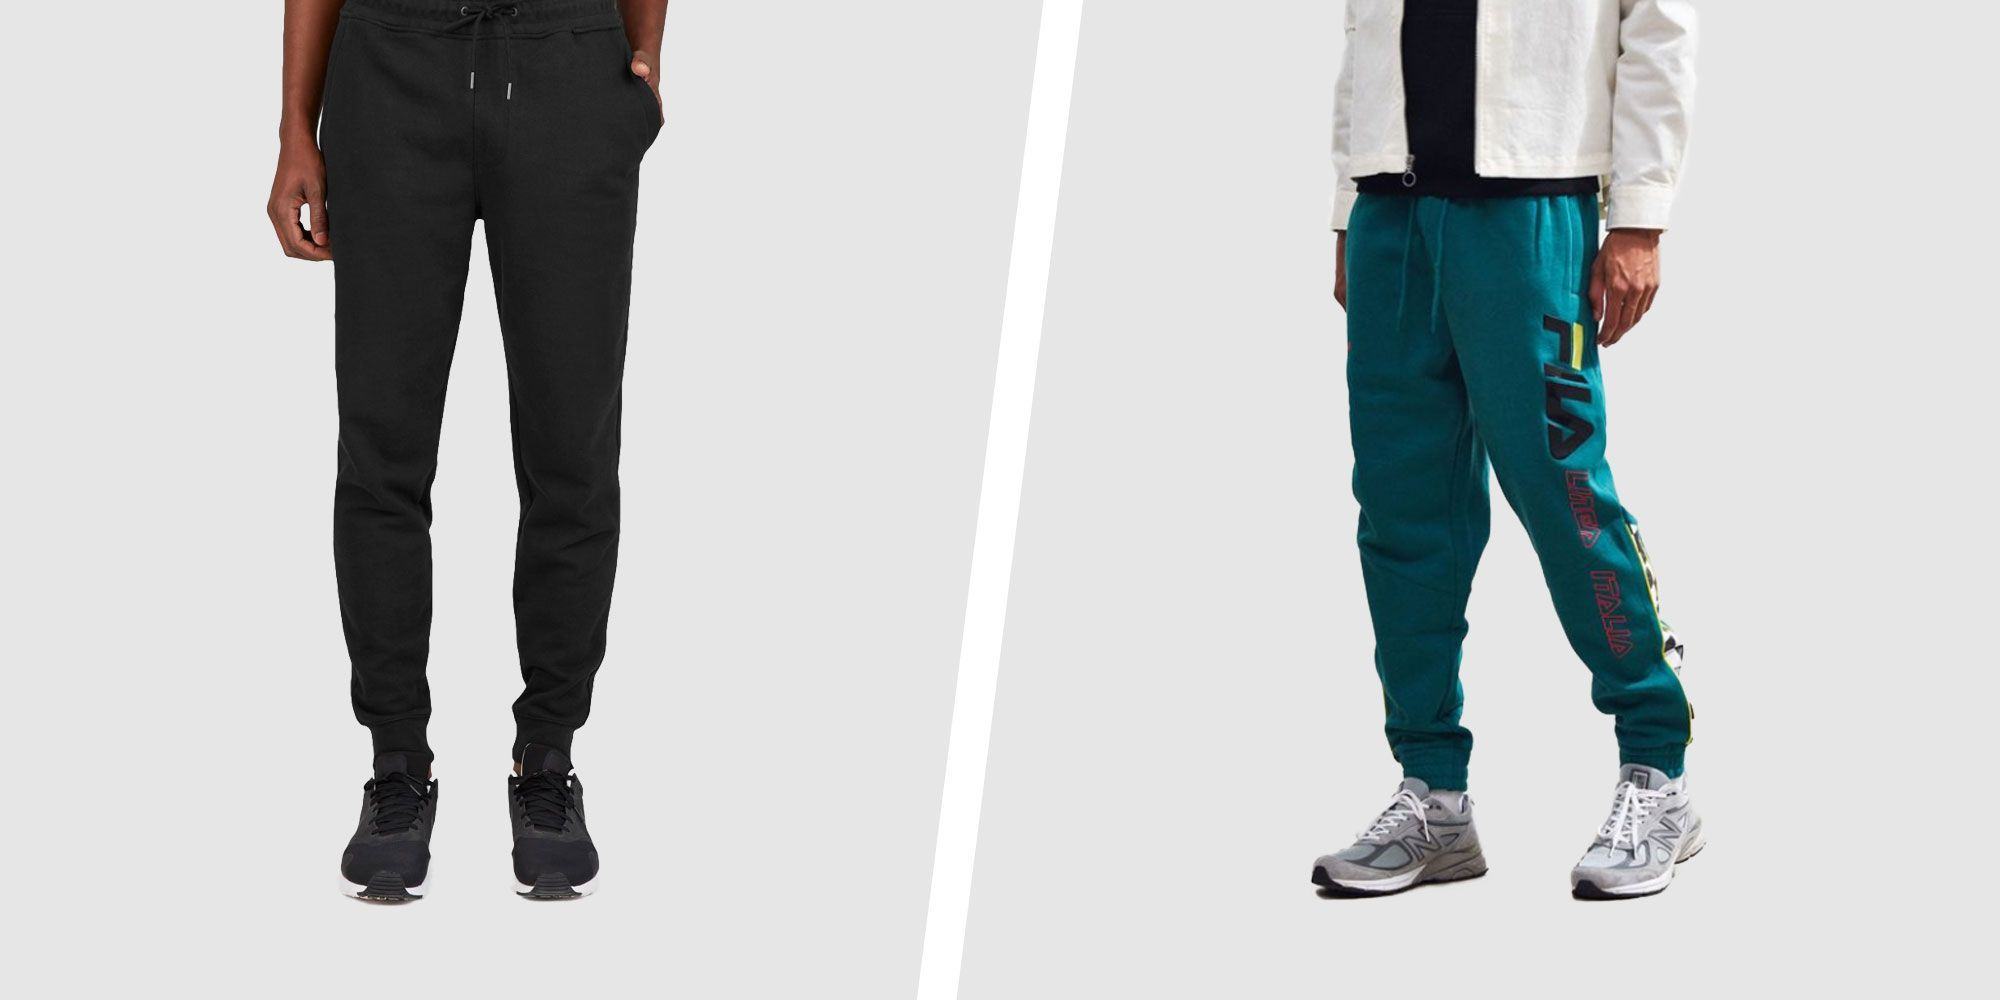 406623e4b The 12 Men s Best Sweatpants That Won t Make You Look Like a Slob